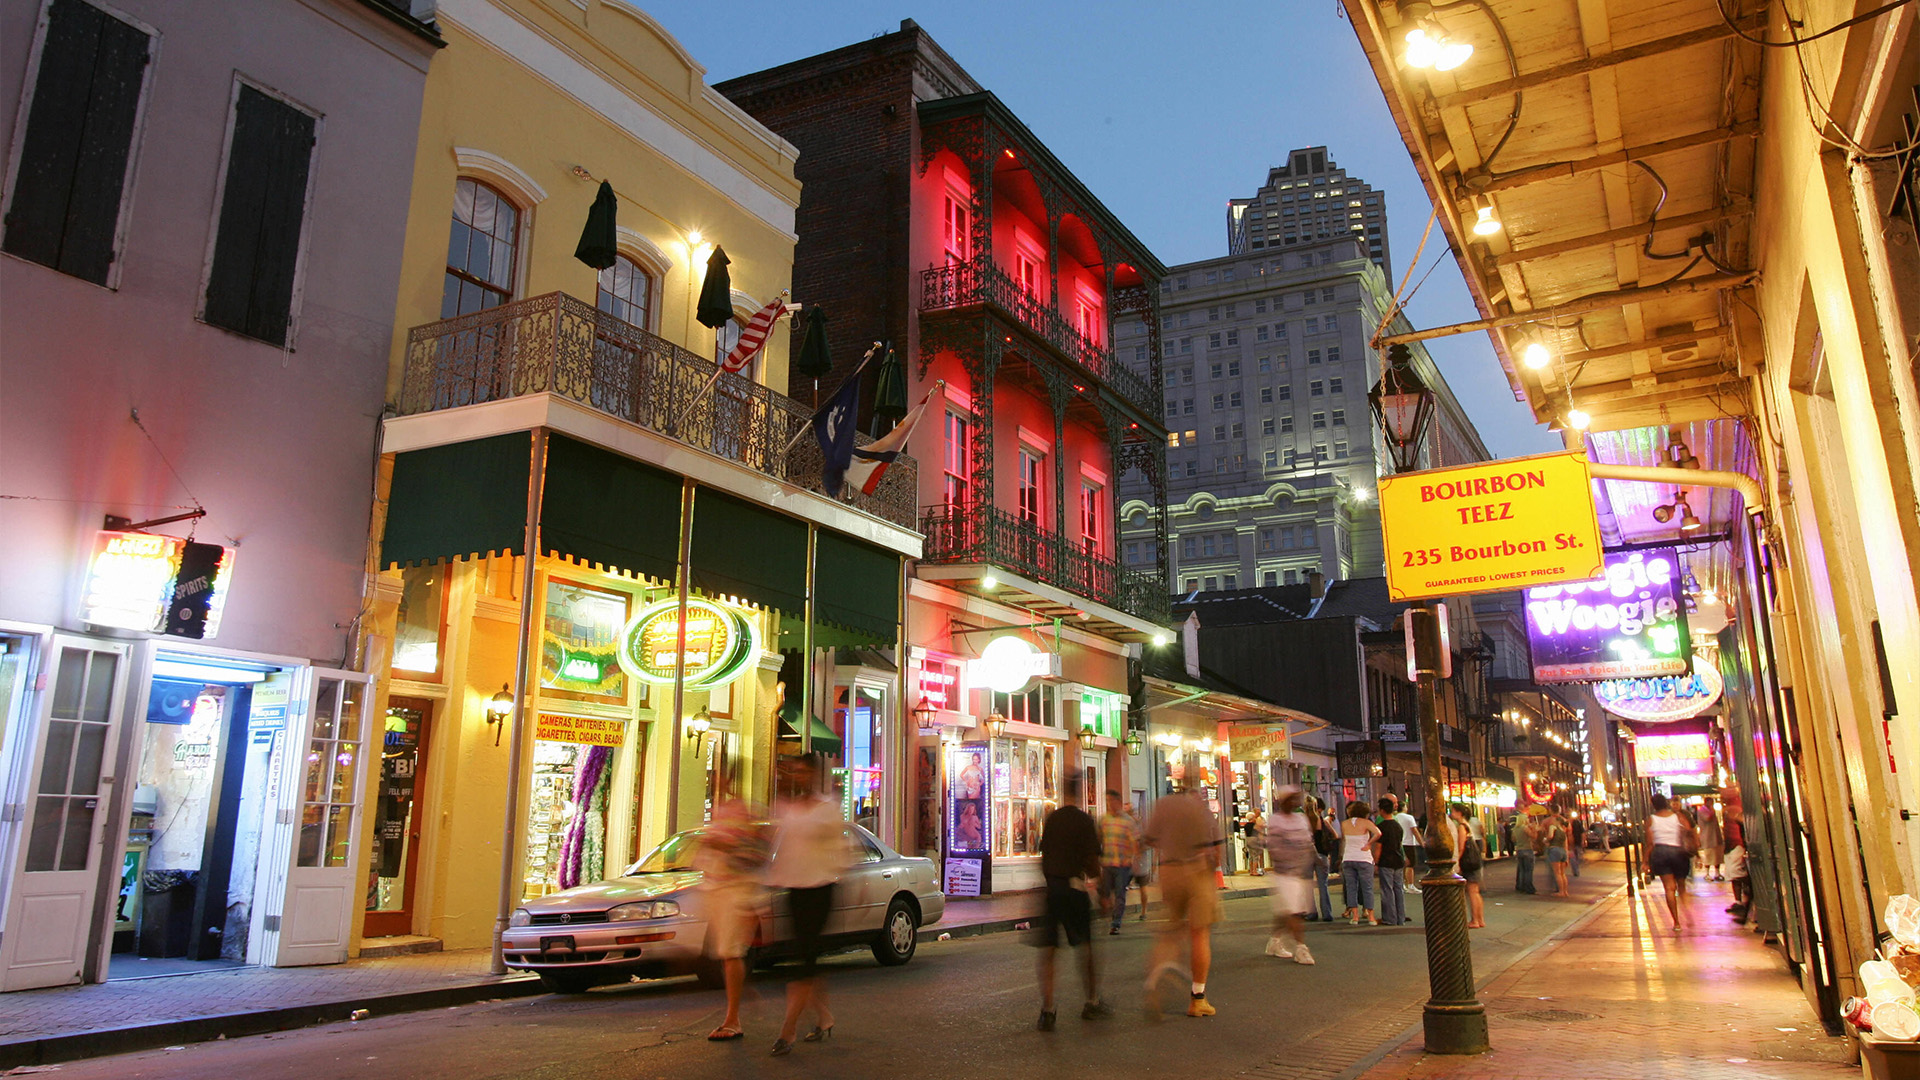 Bourbon Street repairs put spotlight on French Quarter drainage issues